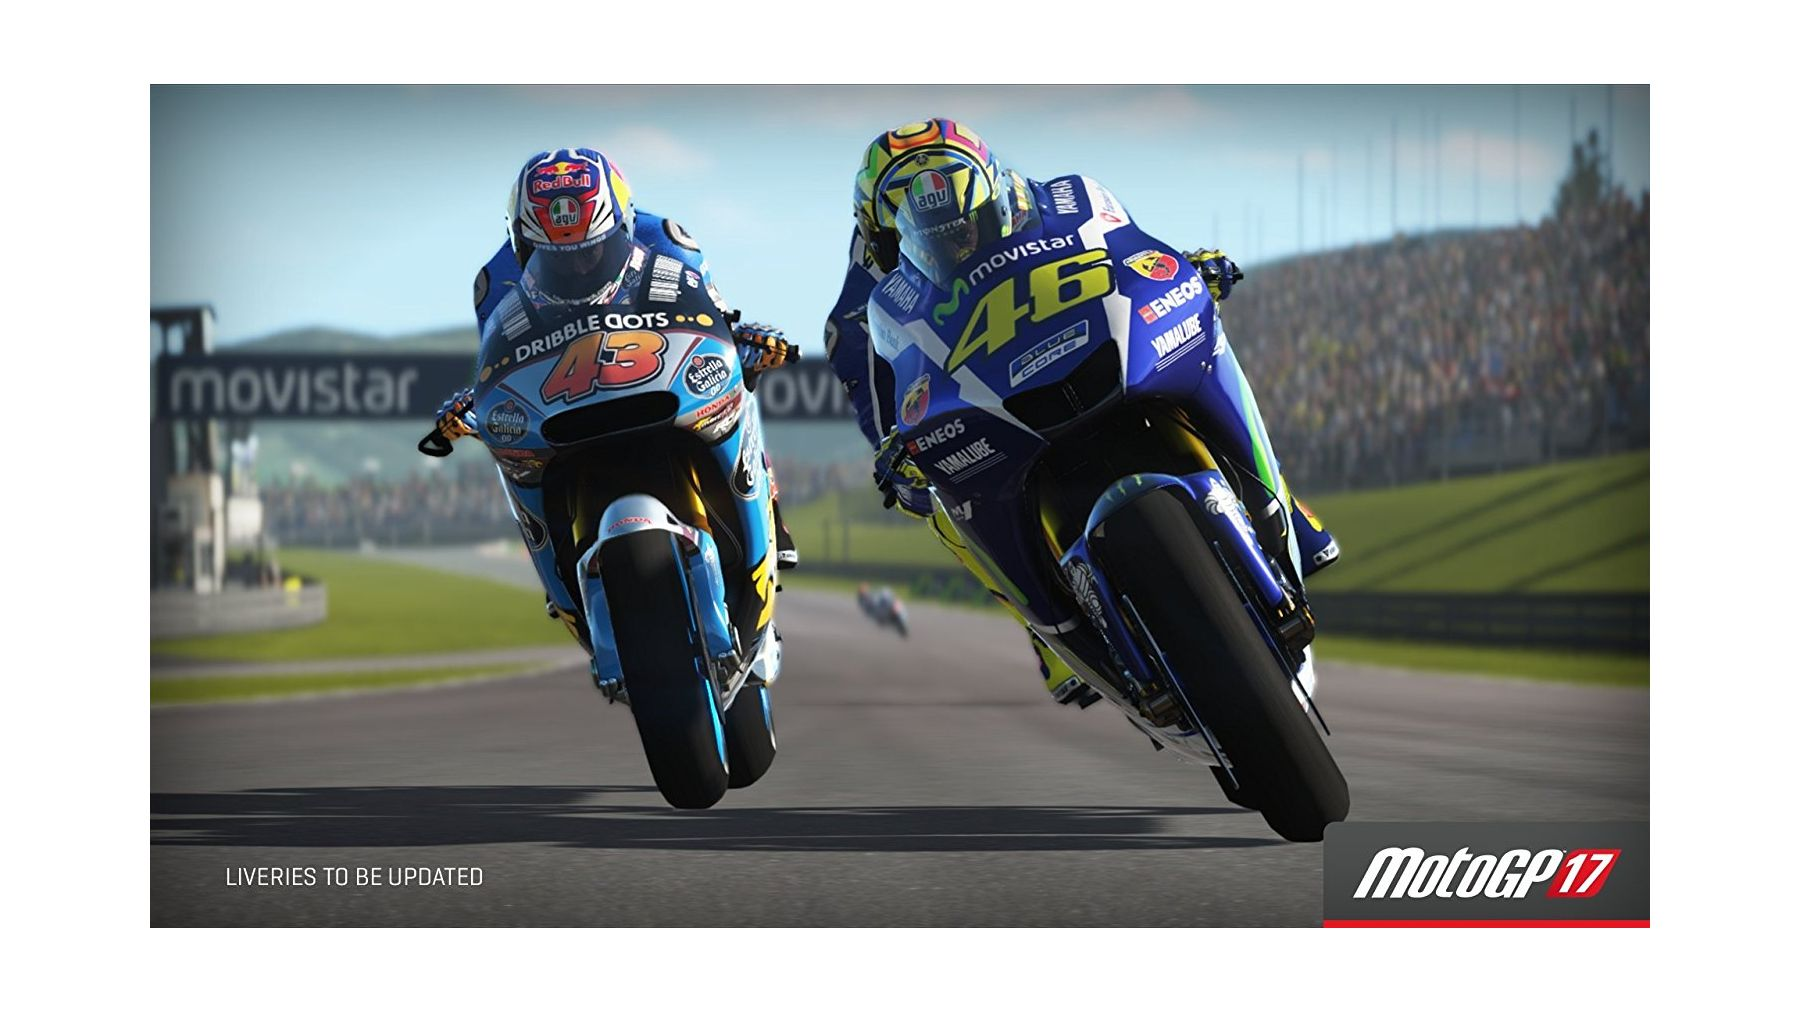 motogp 17 xbox 1 game promising game for every gamers. Black Bedroom Furniture Sets. Home Design Ideas